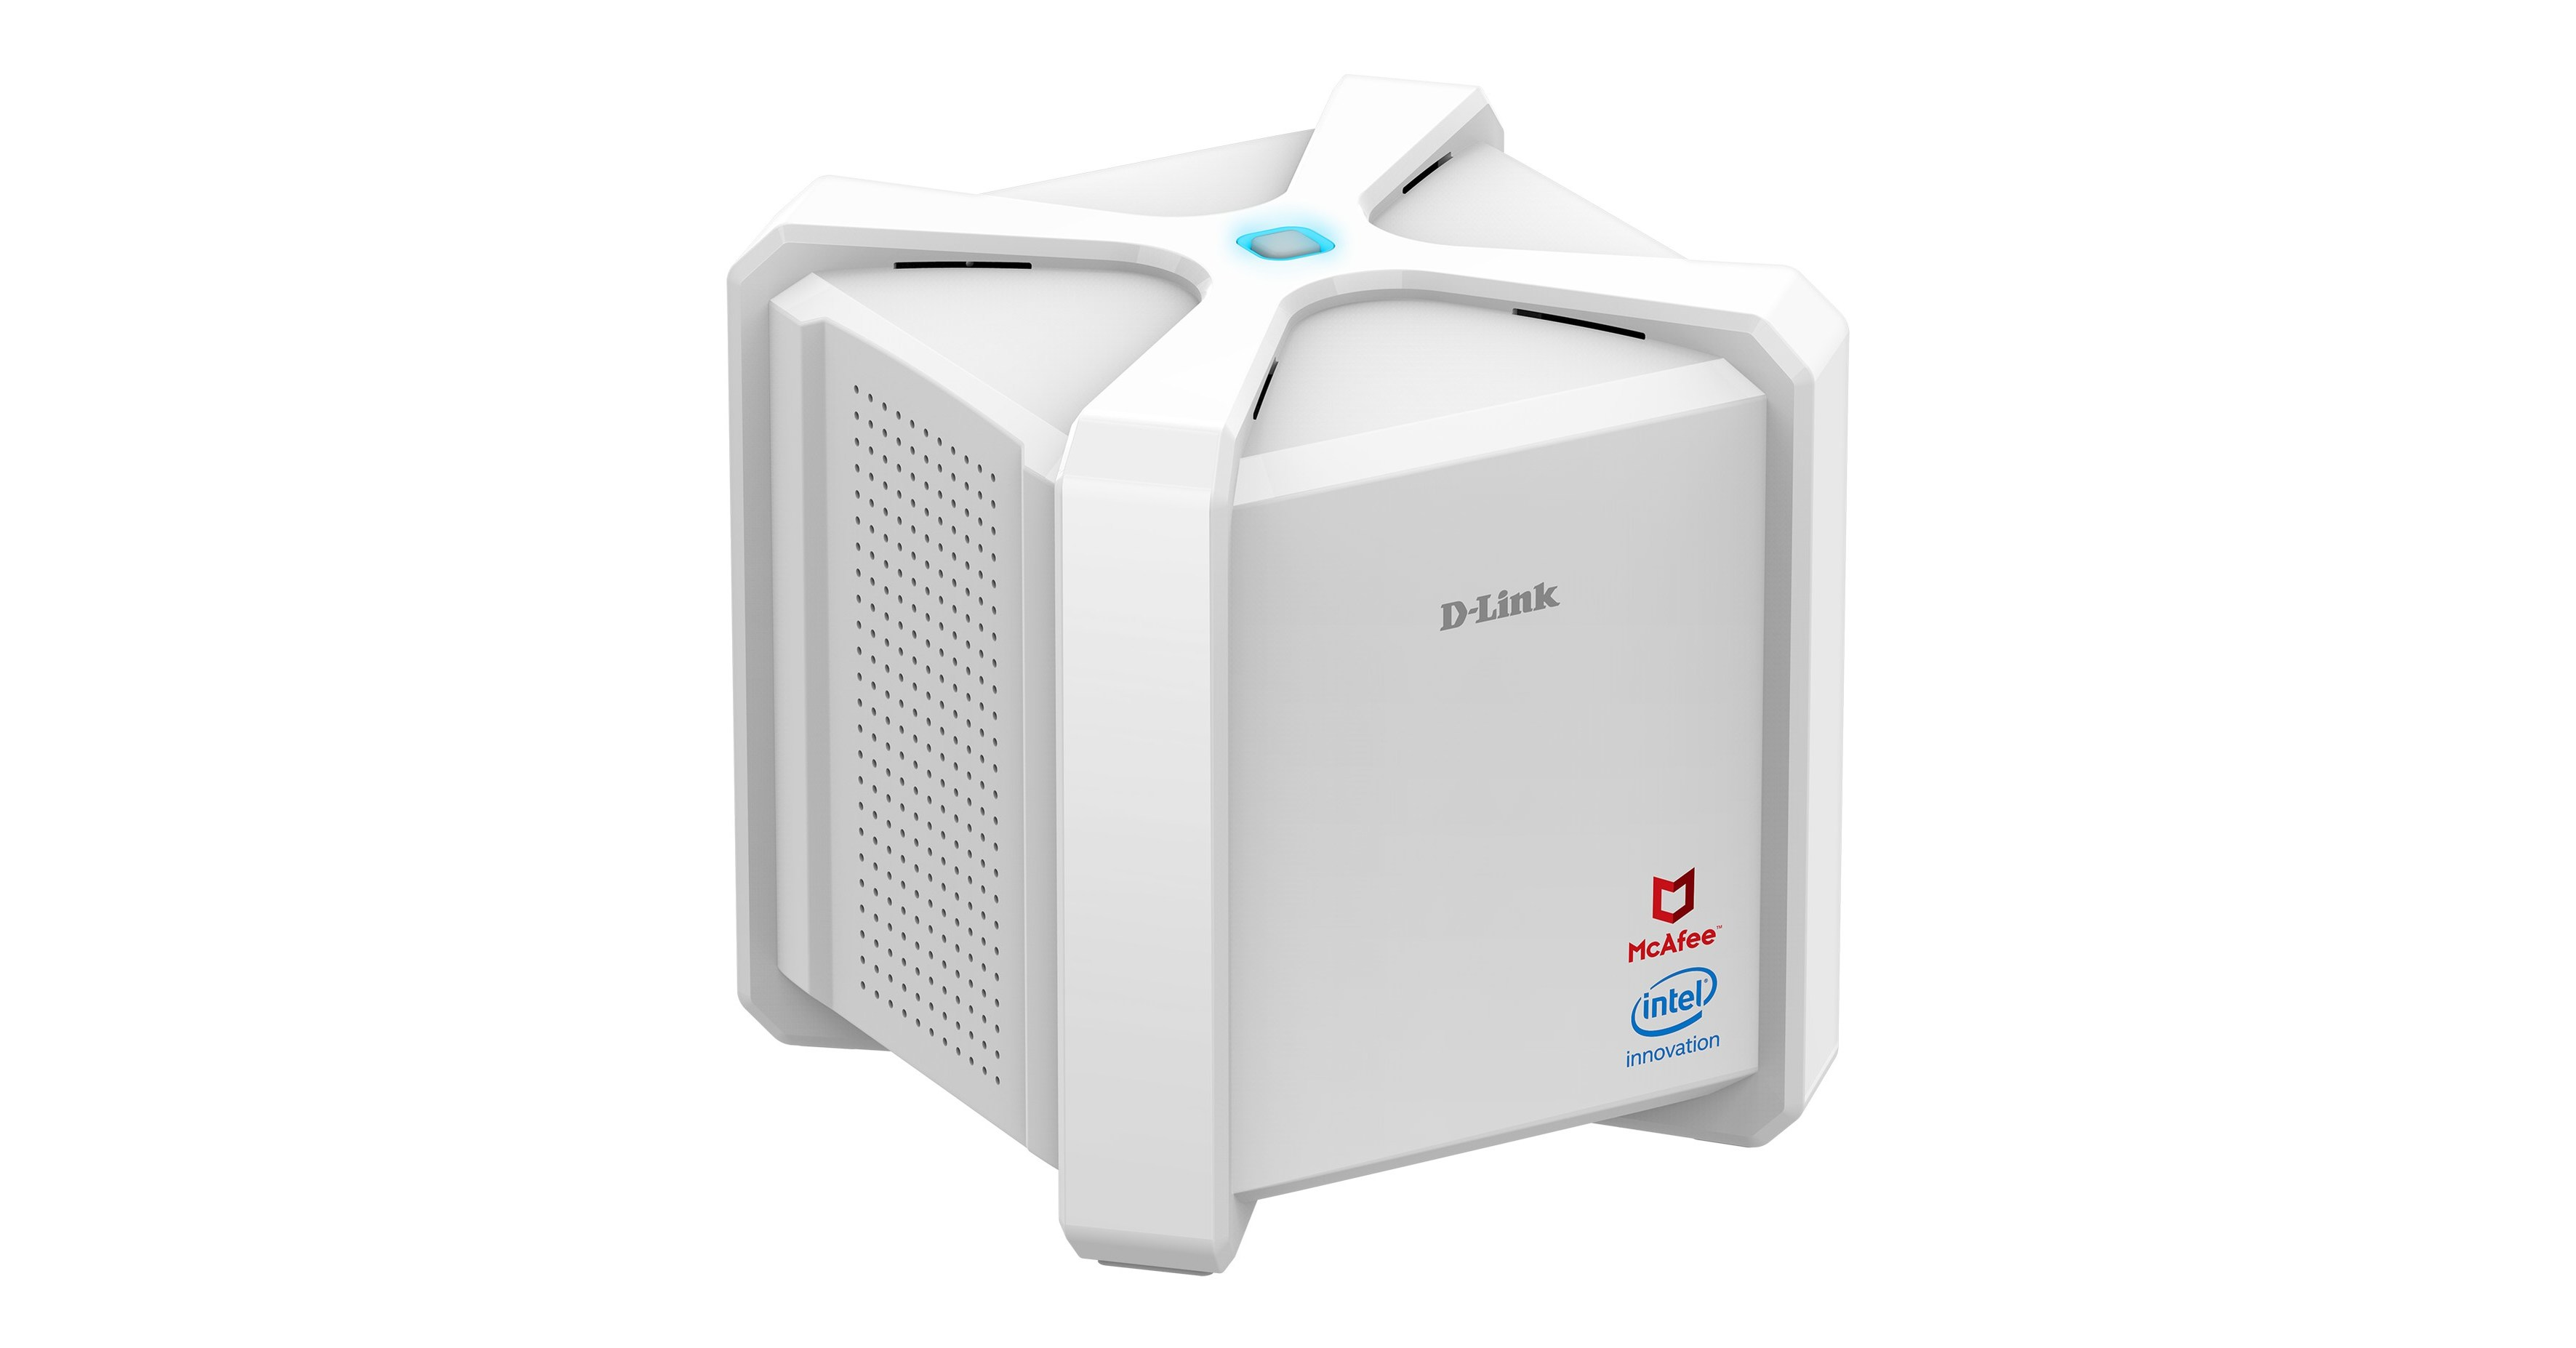 D-Link AC2600 Wi-Fi Router Powered by McAfee and Intel's